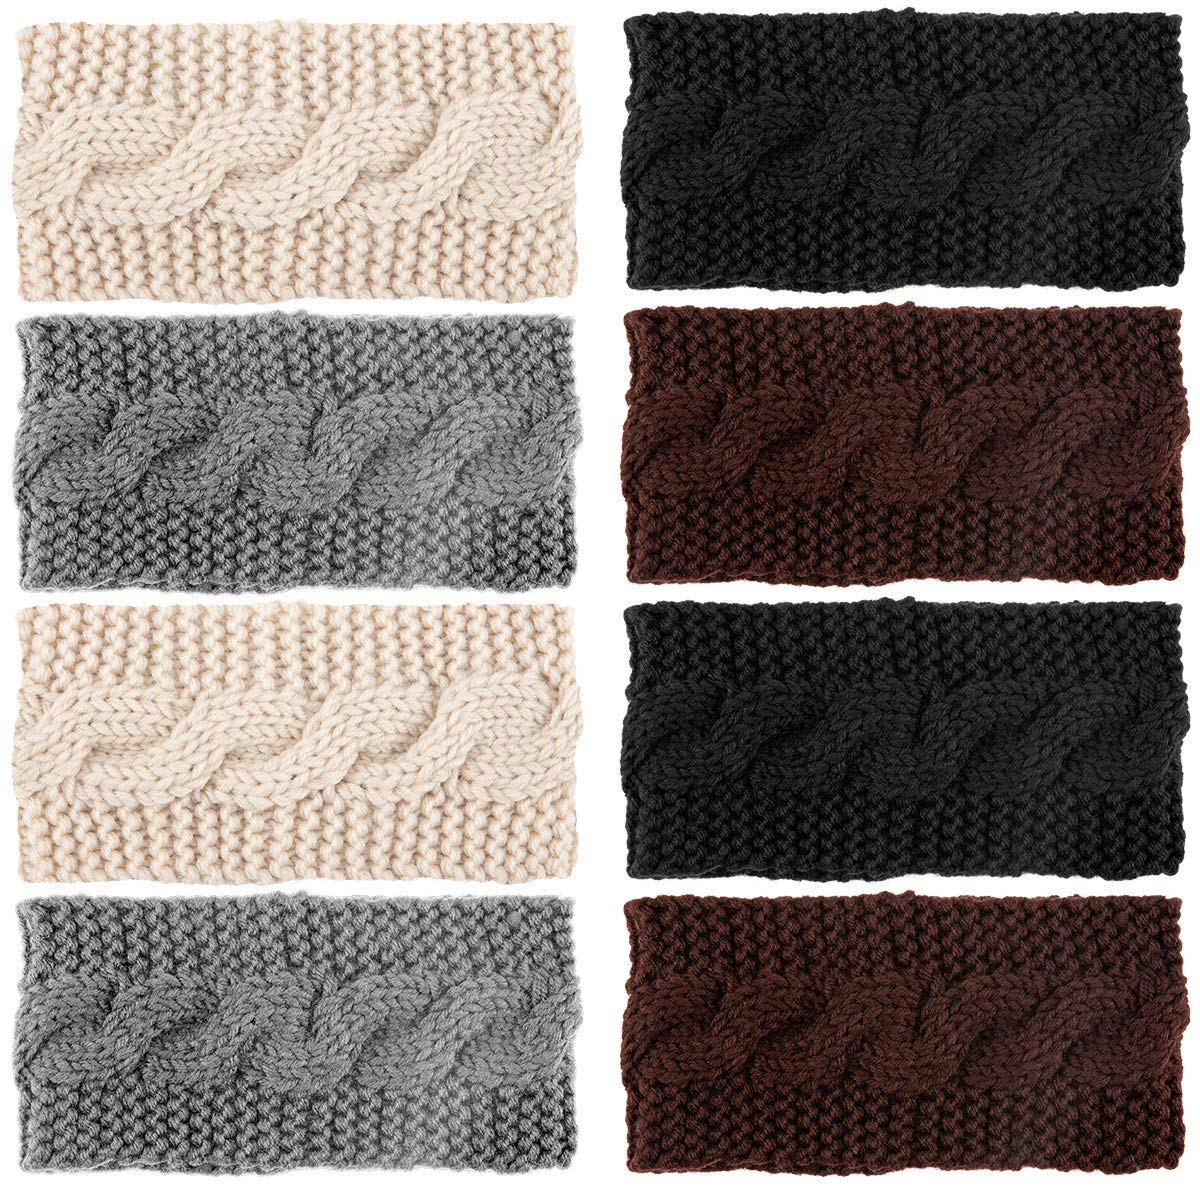 Apipi 8pcs Winter Knitted Headbands- Stretchy Crochet Twist Headband, Soft Braided Ear Warmers Head Wraps for Women Ladies Girls (4 Color)